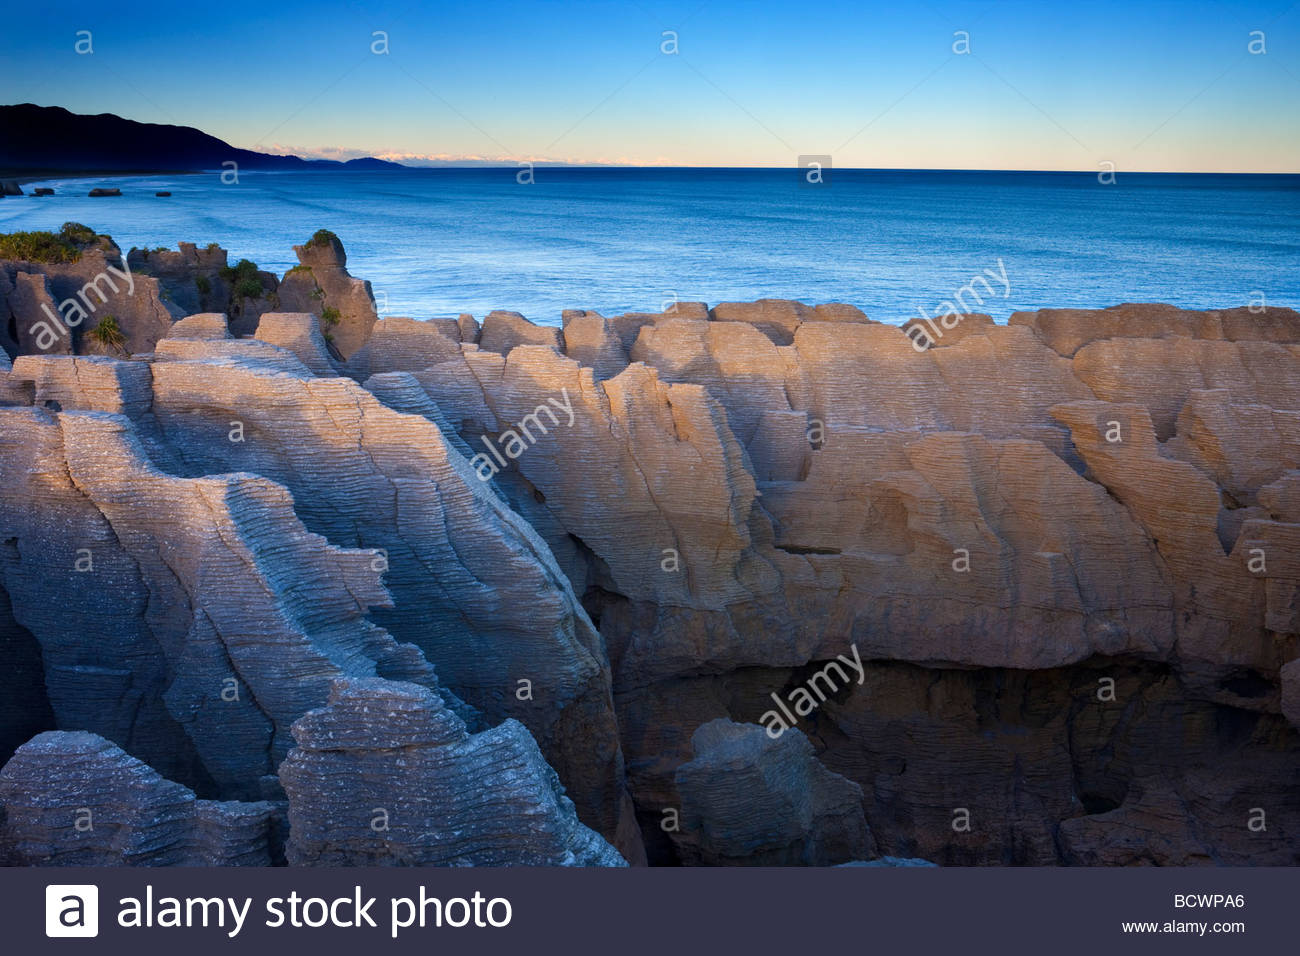 The Pancake Rocks, located in Punakaiki on the West Coast of New Zealand, are layered columns of limestone. - Stock Image